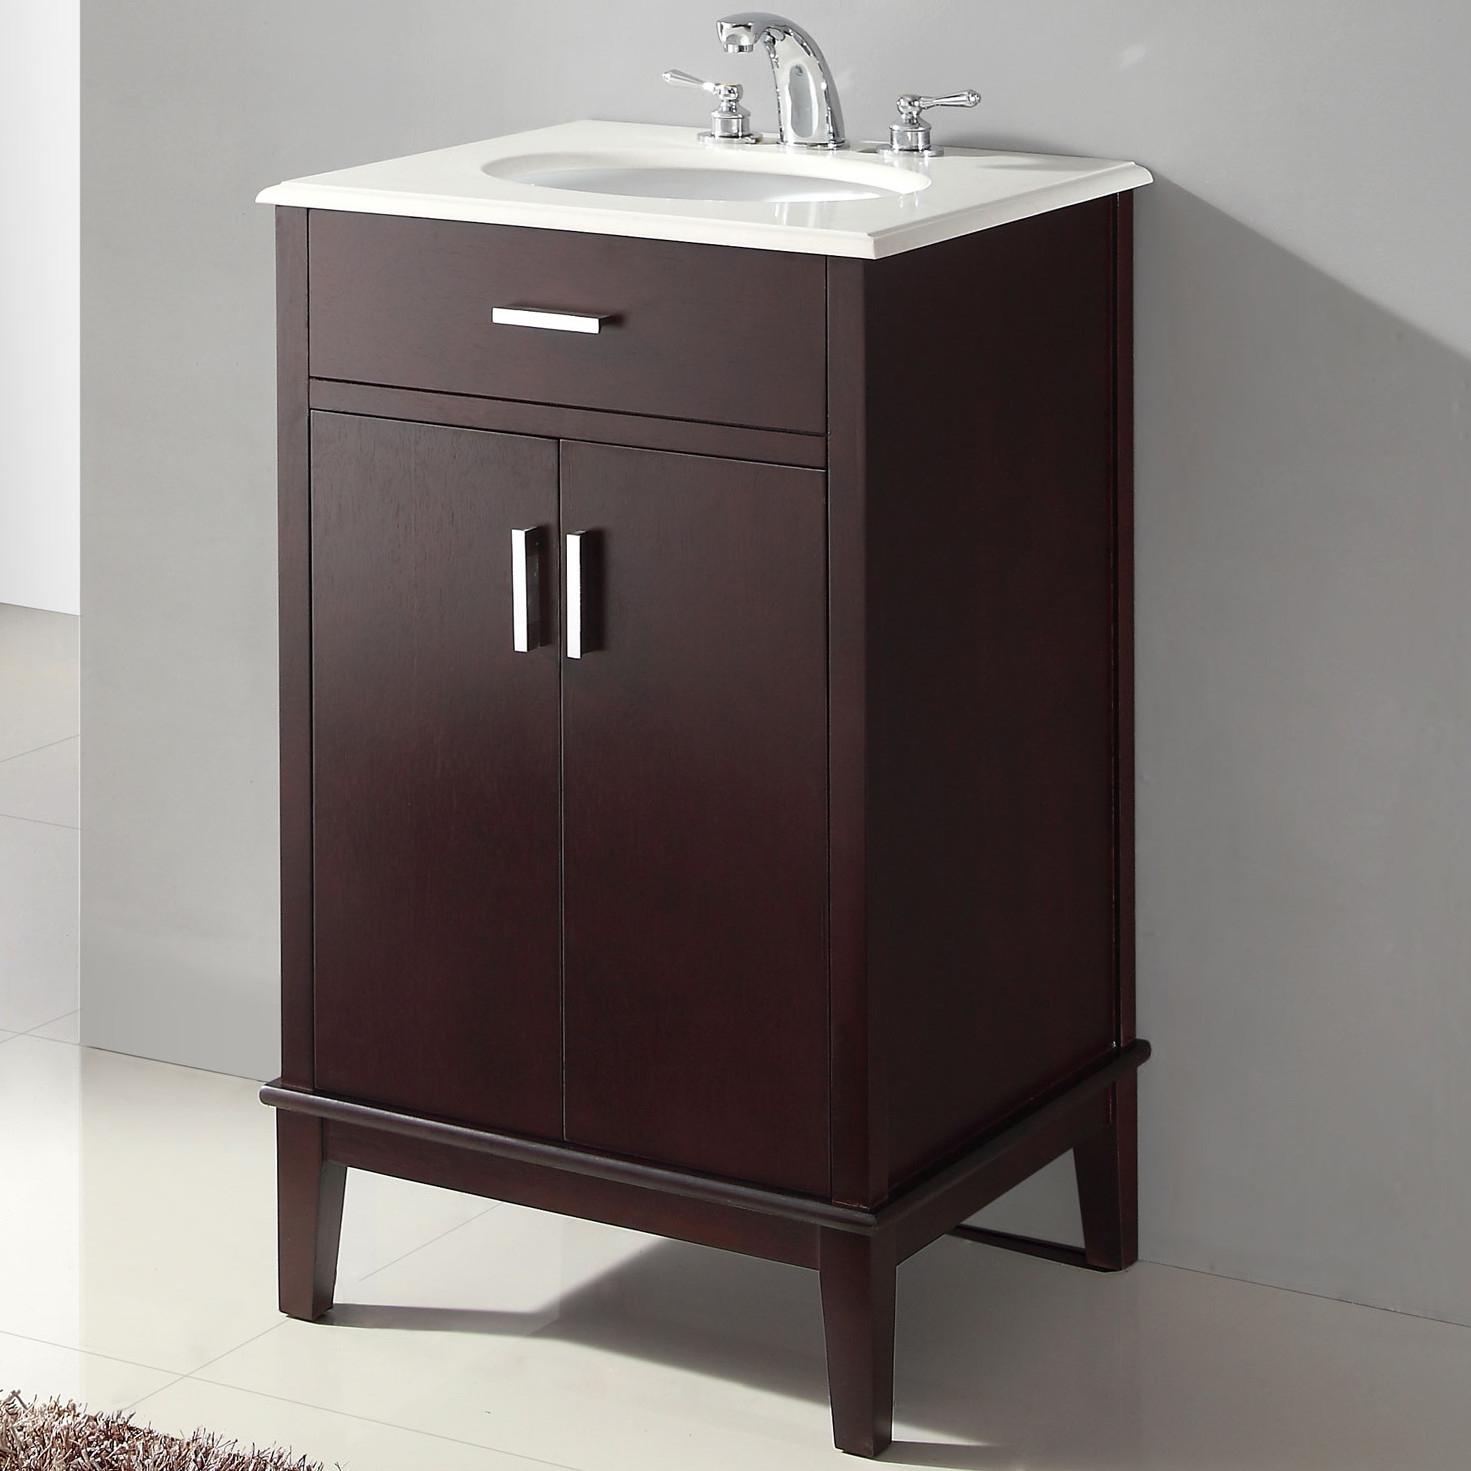 "21"" Single Bathroom Vanity Set in Espresso with White Quartz Top, SHU338291 :  This 21"" Single Bathroom Vanity Set in Espresso with White Quartz Top would be a great addition to your home. It has a contemporary design and a white quartz top. Bombay white quartz top; Oval undermount sink; Birch hardwood frame and legs; Side mounted ball bearing drawer slides; 105 Degree hinges on storage doors; Top pre-drilled for 4"" faucet; Faucet not included; Finish: Dark espresso brown stain; False drawer (does not open); Manufacturer provides 1 year warranty, limited to manufacturer defects. Base Finish: Dark Wood; Sink Type: Undermount; Top Finish: Brown; Base Material: Wood; Number of Sinks: 1; Mounting: Free-standing; Doors Included: Yes; Drawers Included: No; Sink Included: Yes; Country of Manufacture: China."